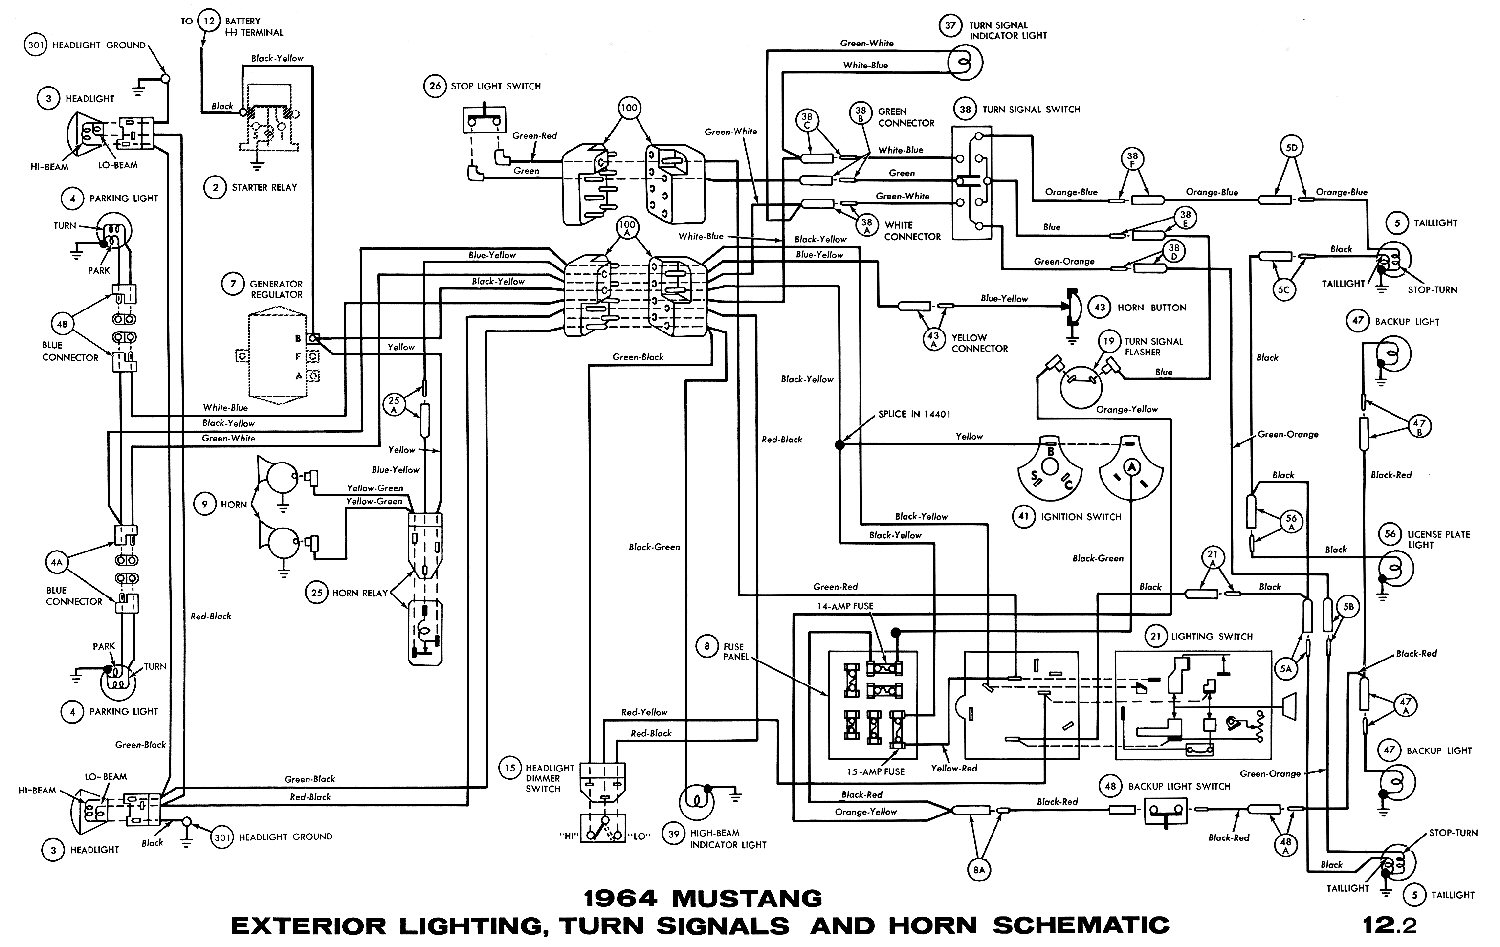 1964 Mustang Wiring Diagrams Average Joe Restoration Signal Stat 900 Diagram Headlamps